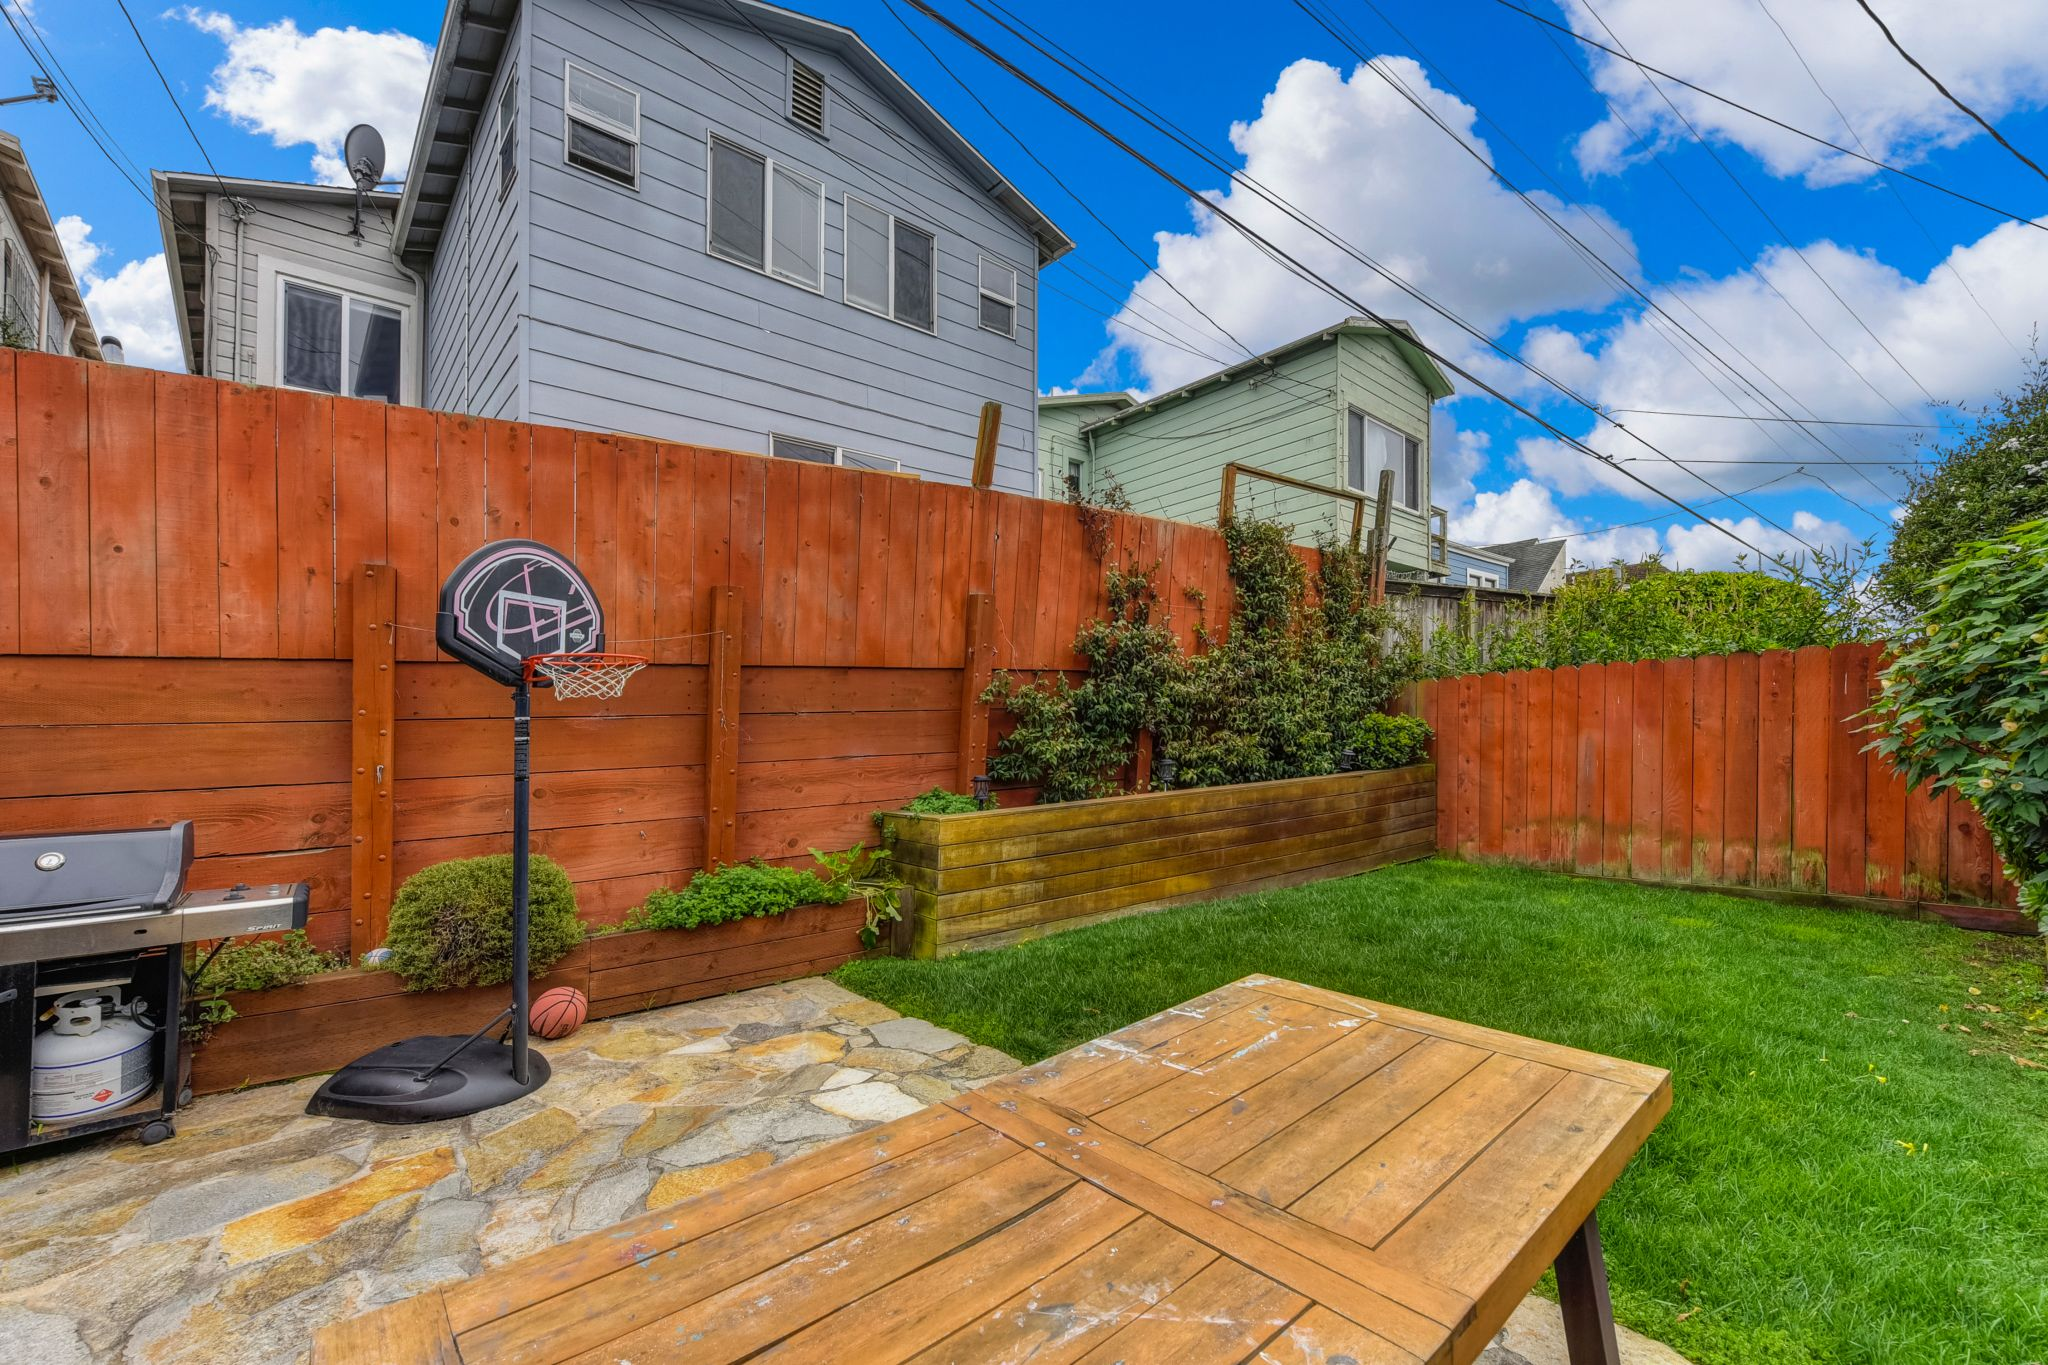 With a flagstone patio and a patch of grass, the backyard offers opportunities for outdoor play and dining.